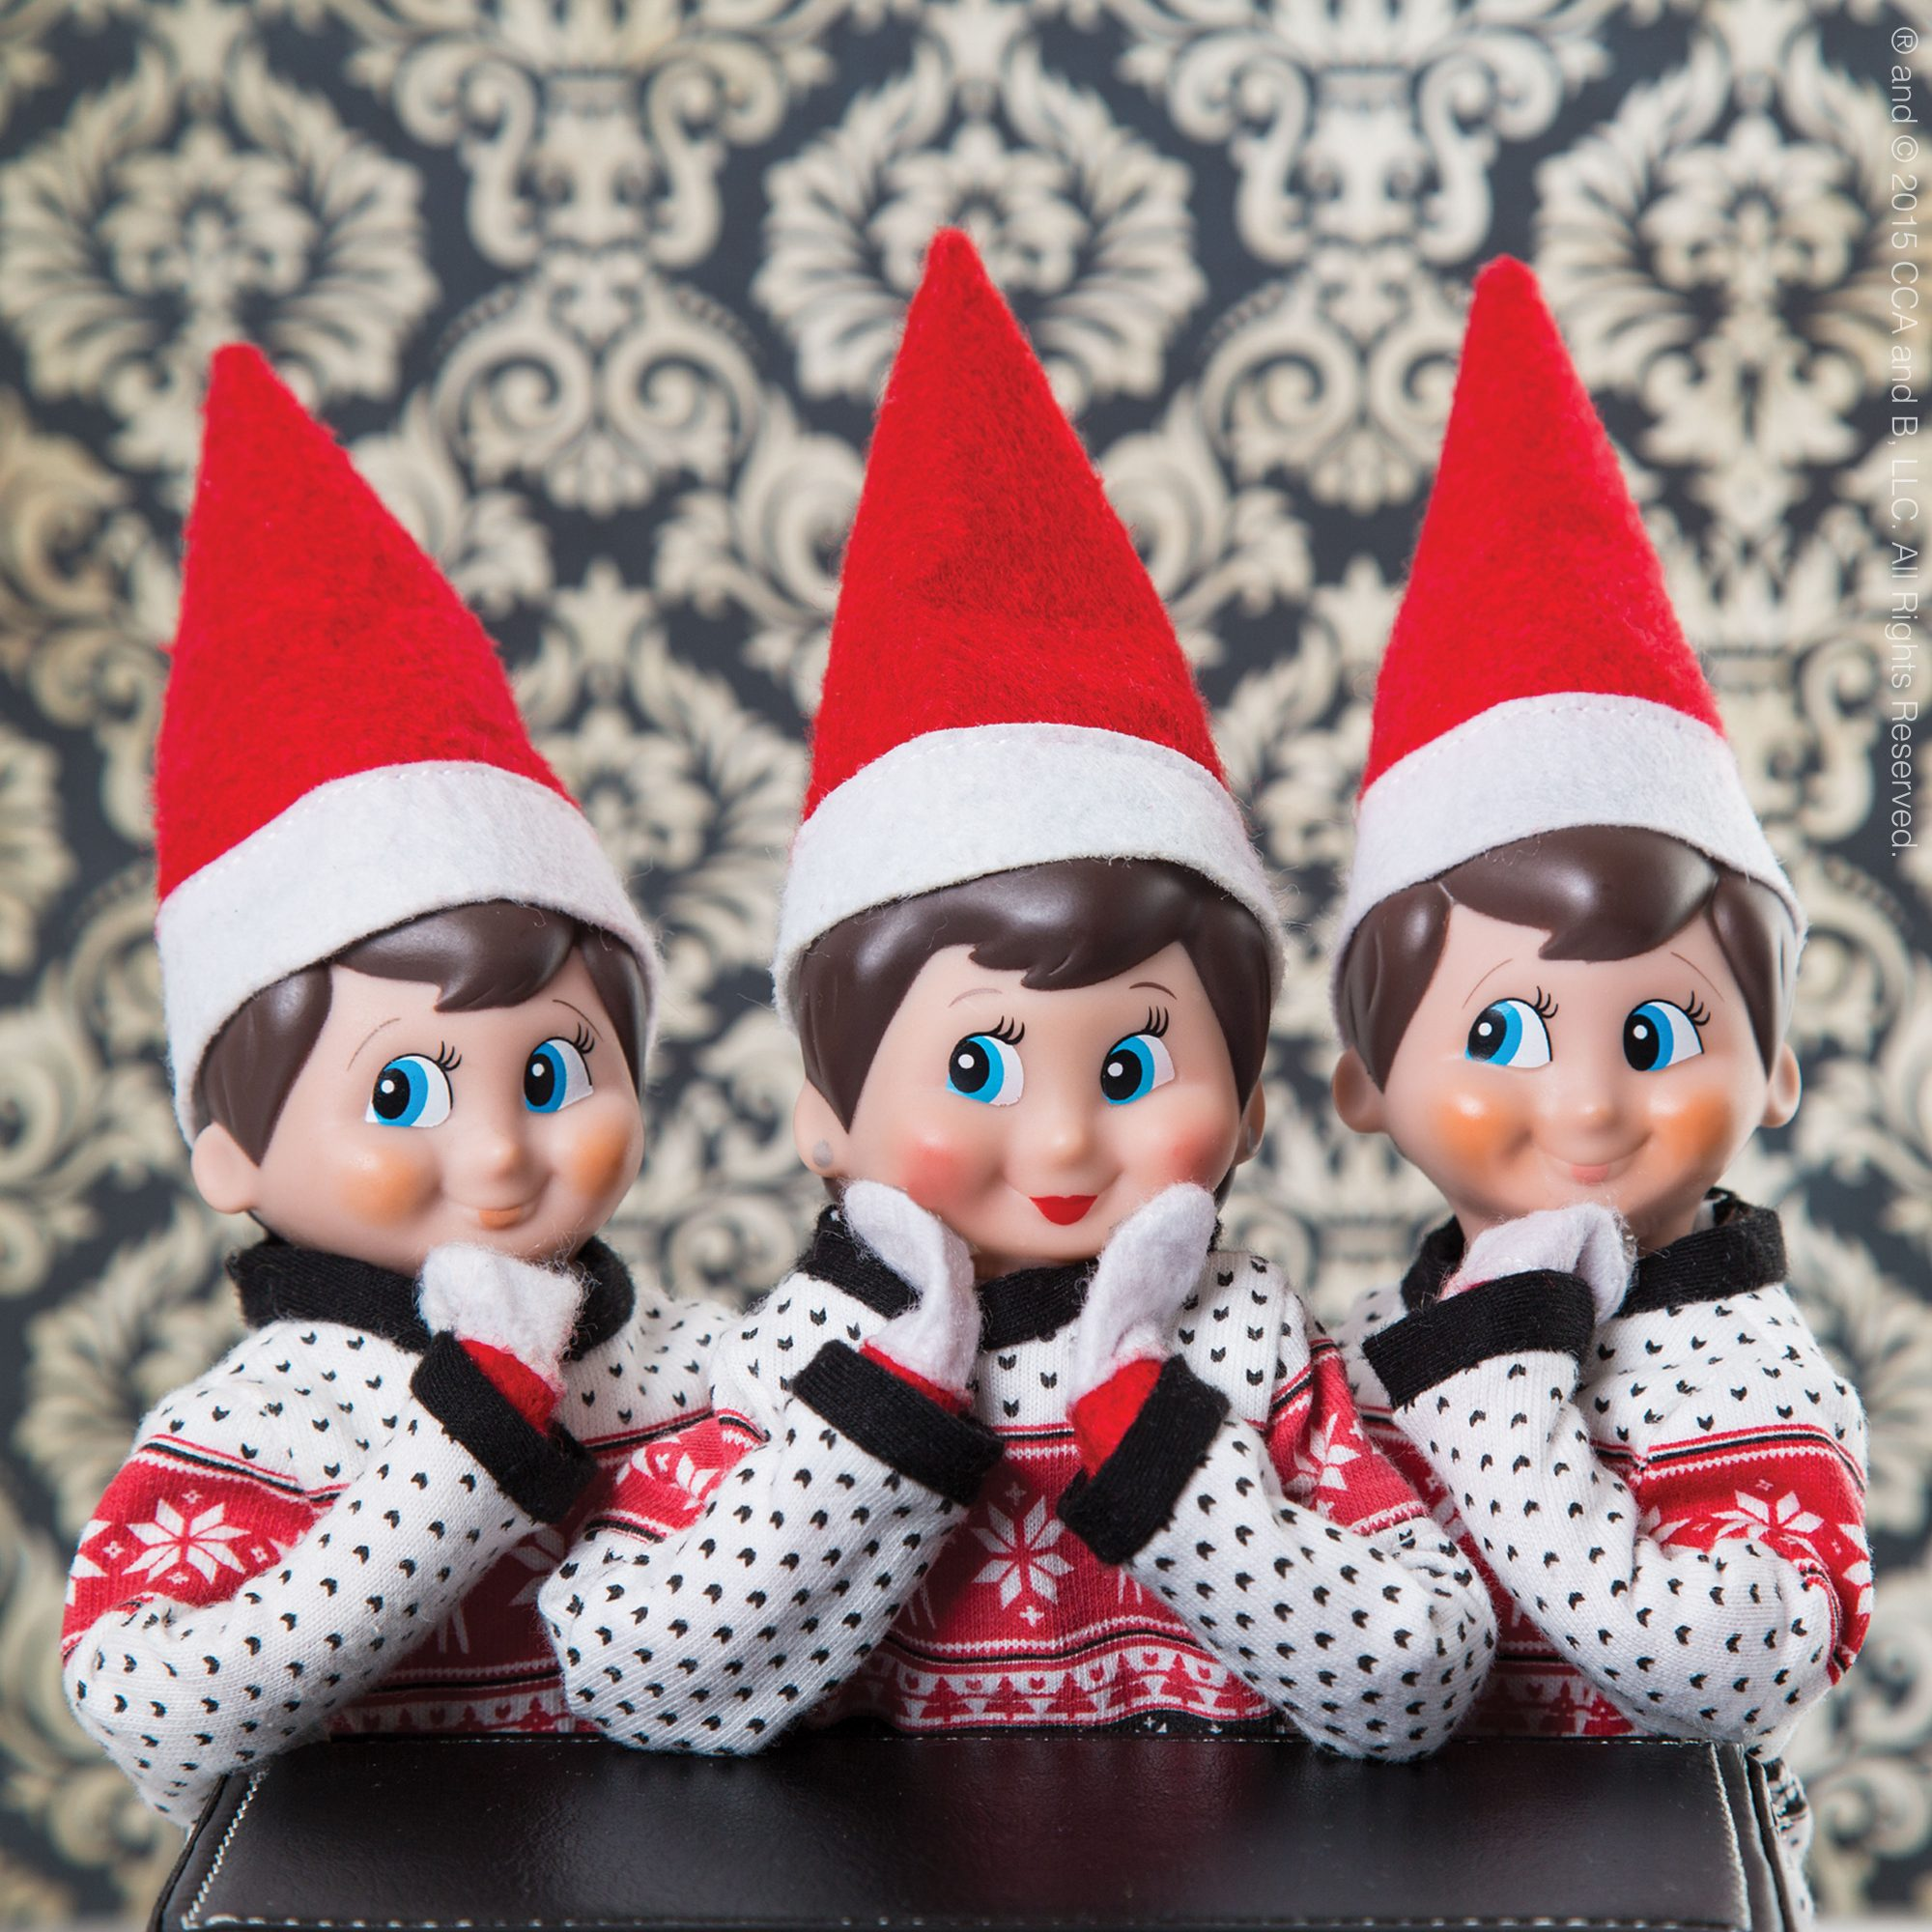 What Are Some Creative 'Elf On The Shelf' Ideas?!